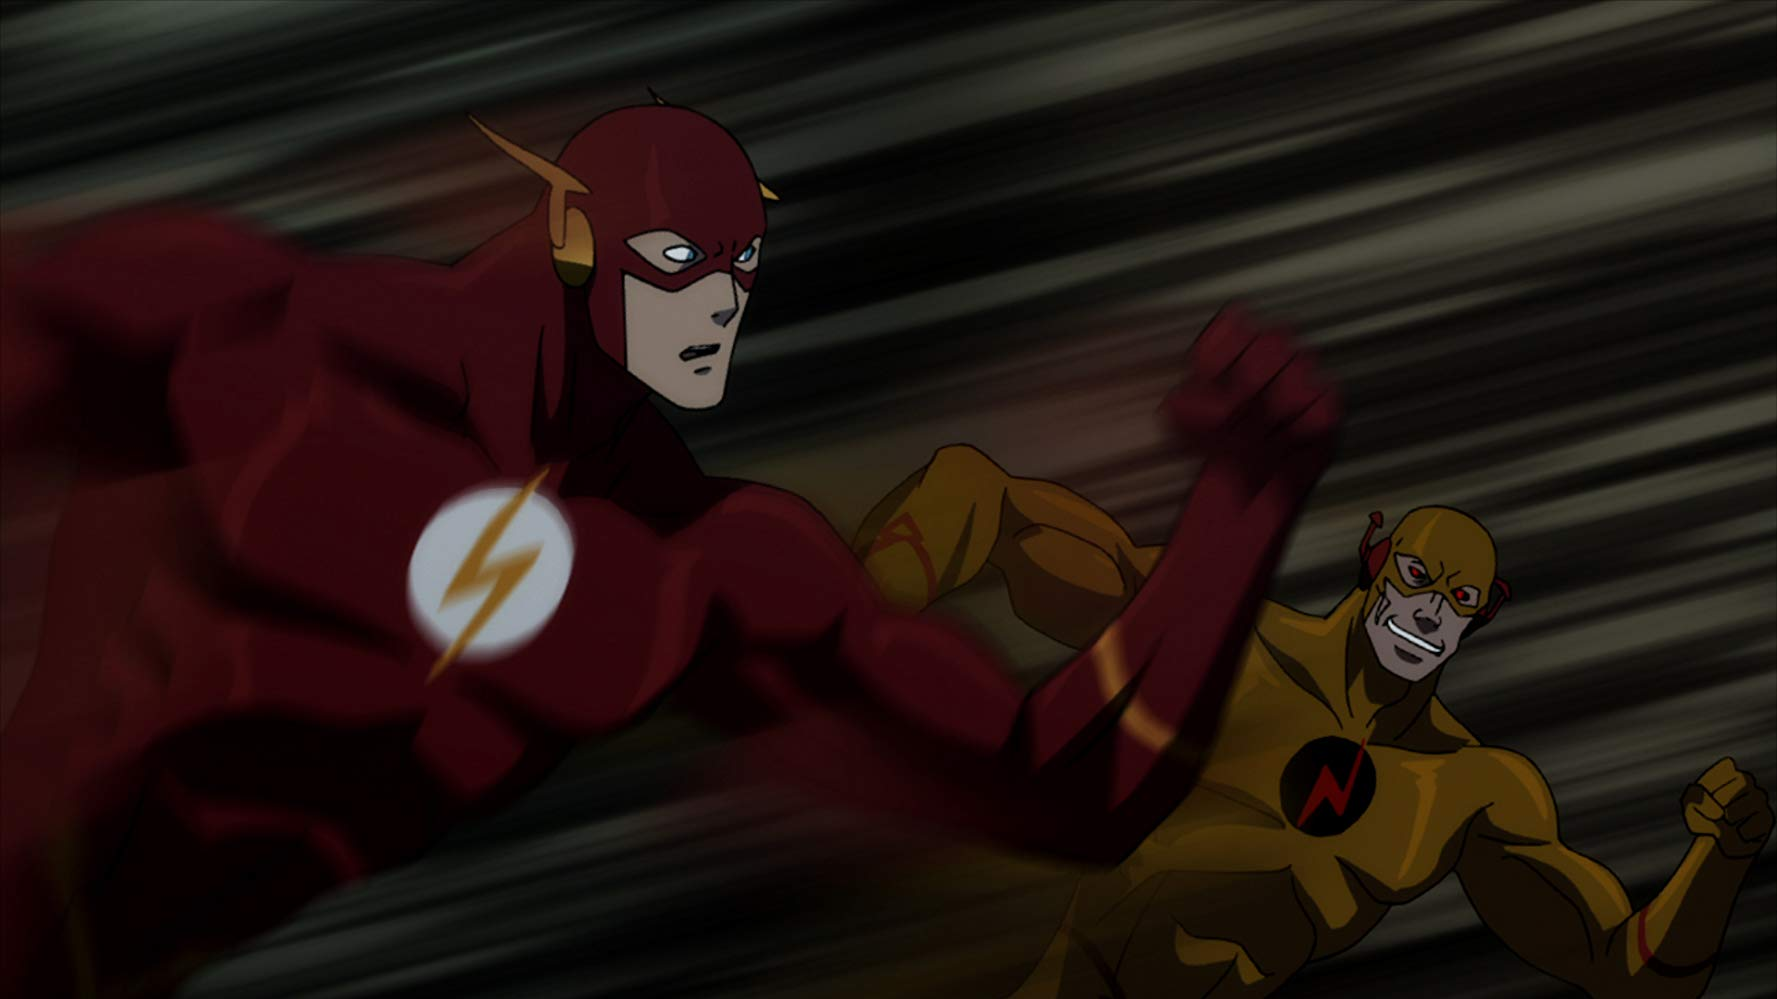 The Flash and Professor Zoom in Justice League The Flashpoint Paradox (2013)